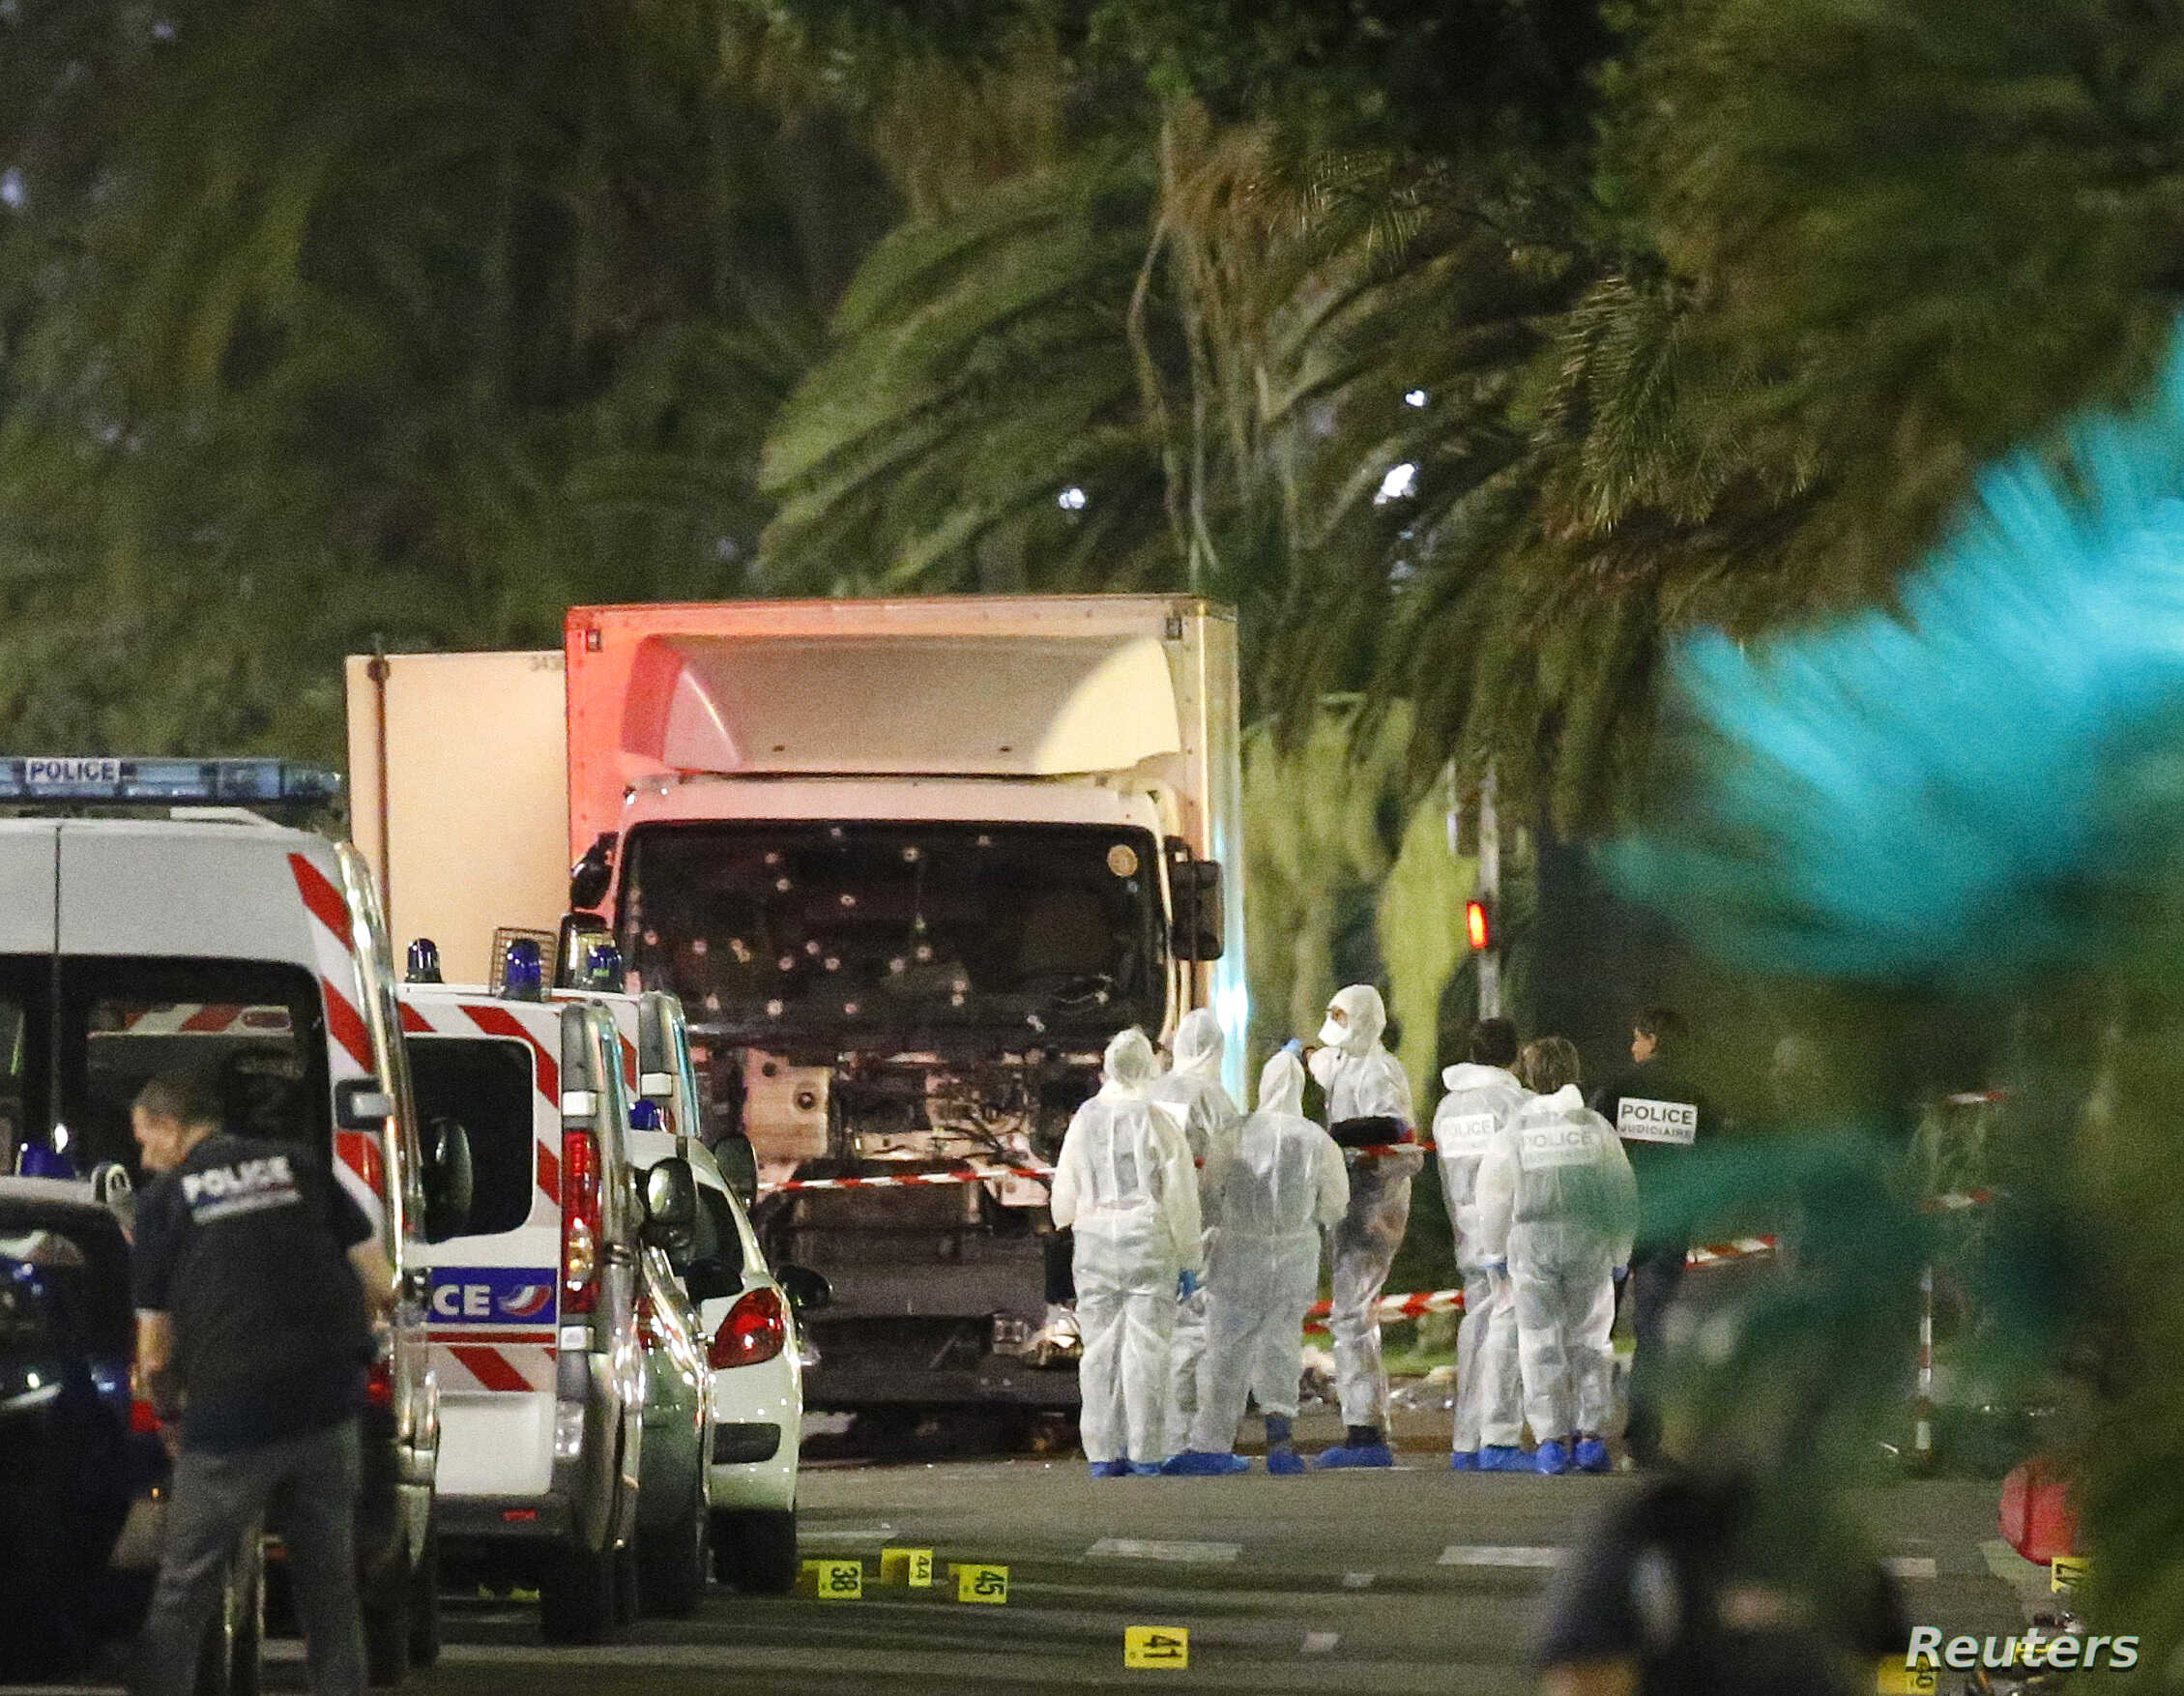 French police force and forensic officers early Friday look at the truck that ran into a crowd celebrating the Bastille Day national holiday, killing at least 77 people, in Nice, France, July 14, 2016.